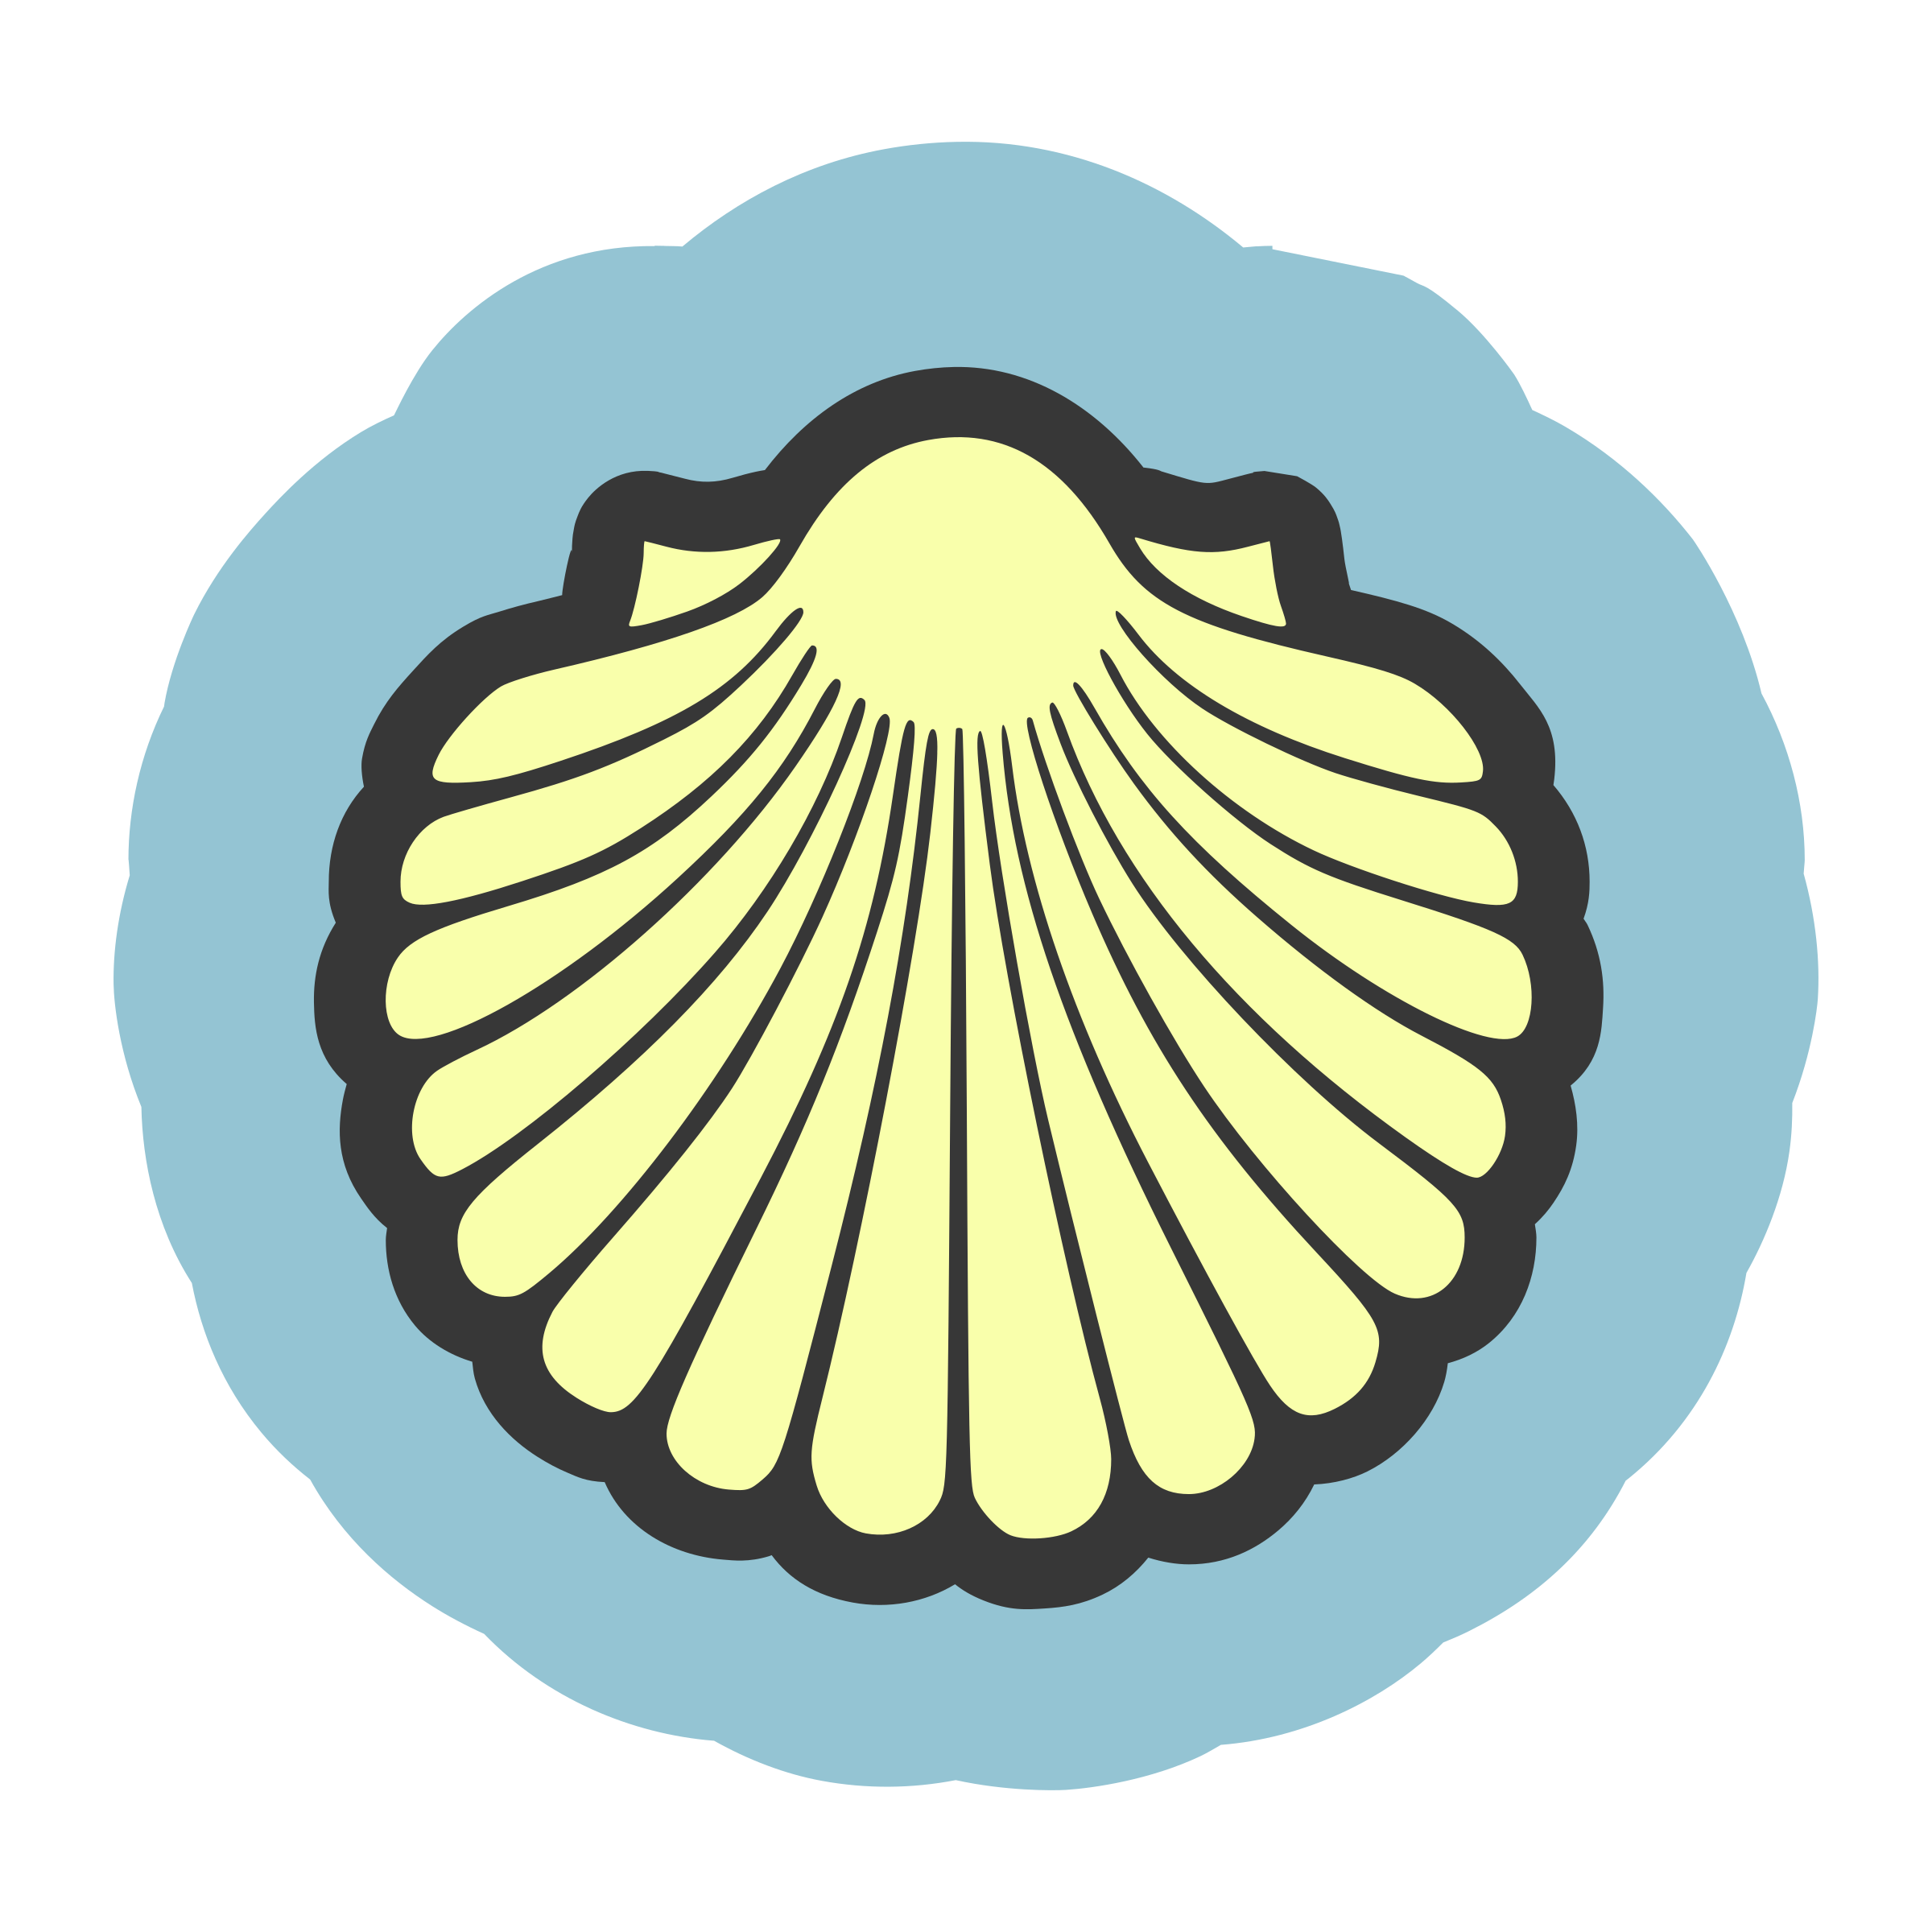 Scallop Seashell Clam Clip art.